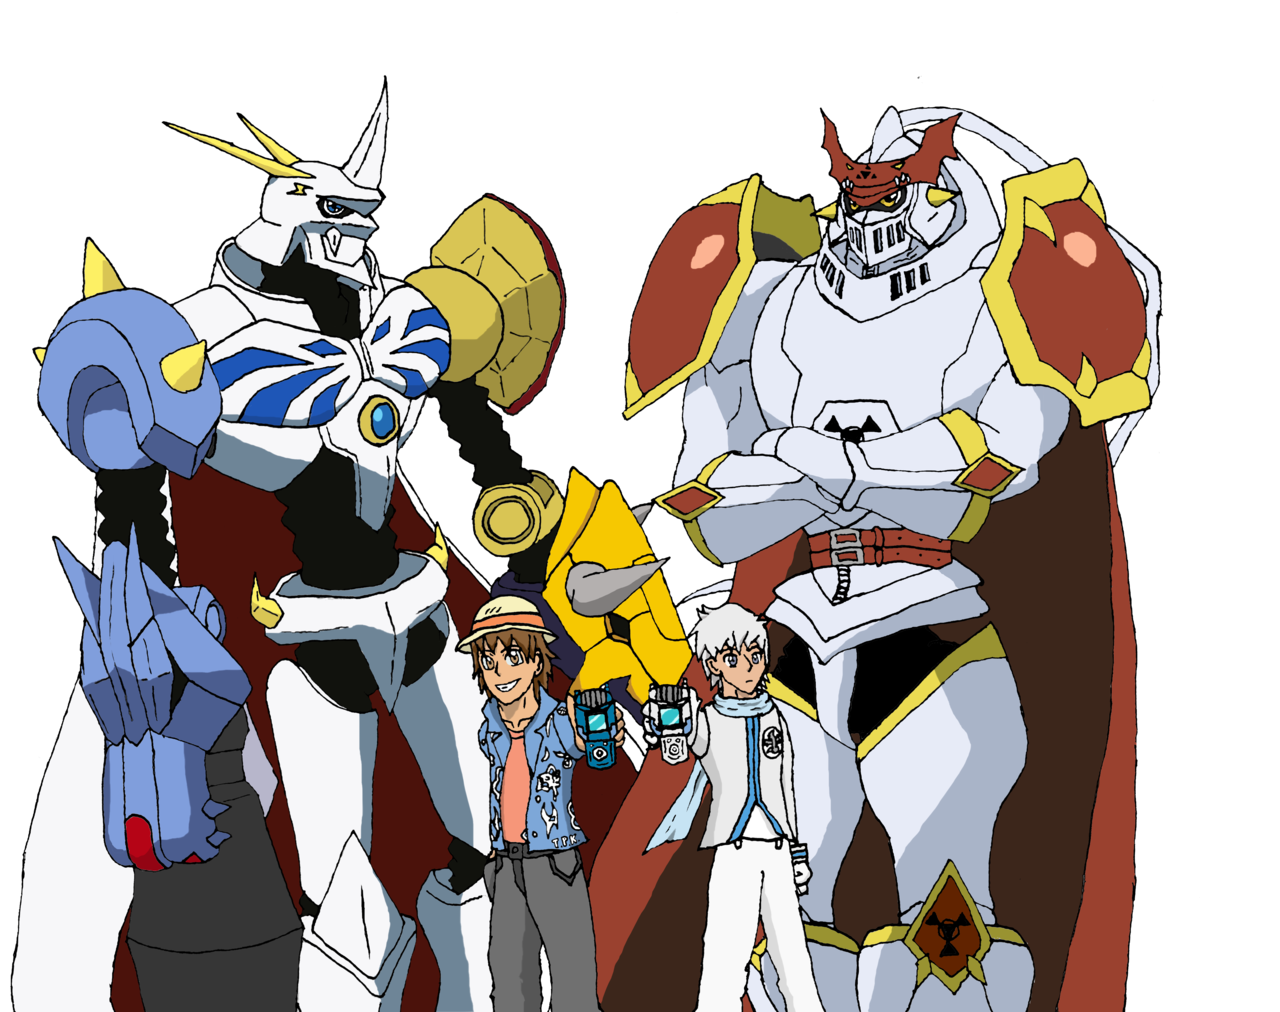 http://gallerycartoon.blogspot.com/2015/03/cartoon-pictures-digimon-7.html